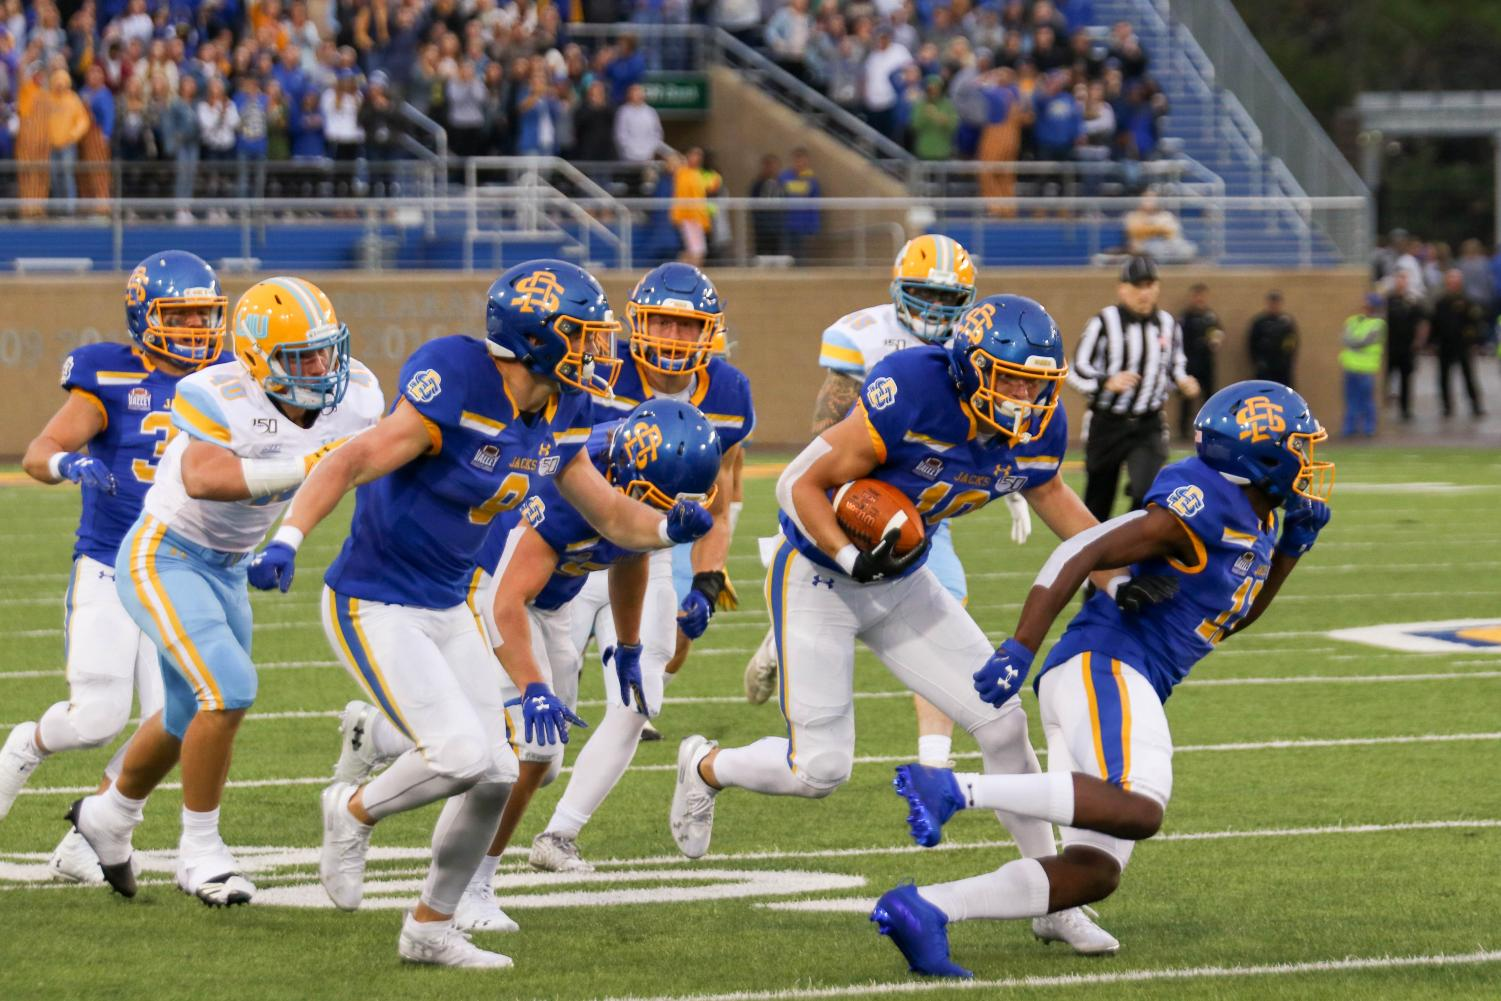 South Dakota State redshirt freshman and Madison, South Dakota, native Jaxon Janke (10, with football) runs through would-be tacklers with the help of several escorts, including twin brother Jadon (9), on a 77-yard punt return touchdown Sept. 7 against Long Island. After appearing in just seven combined games in 2018, Jadon and Jaxon, who play wide receiver, are seeing regular playing time in 2019.